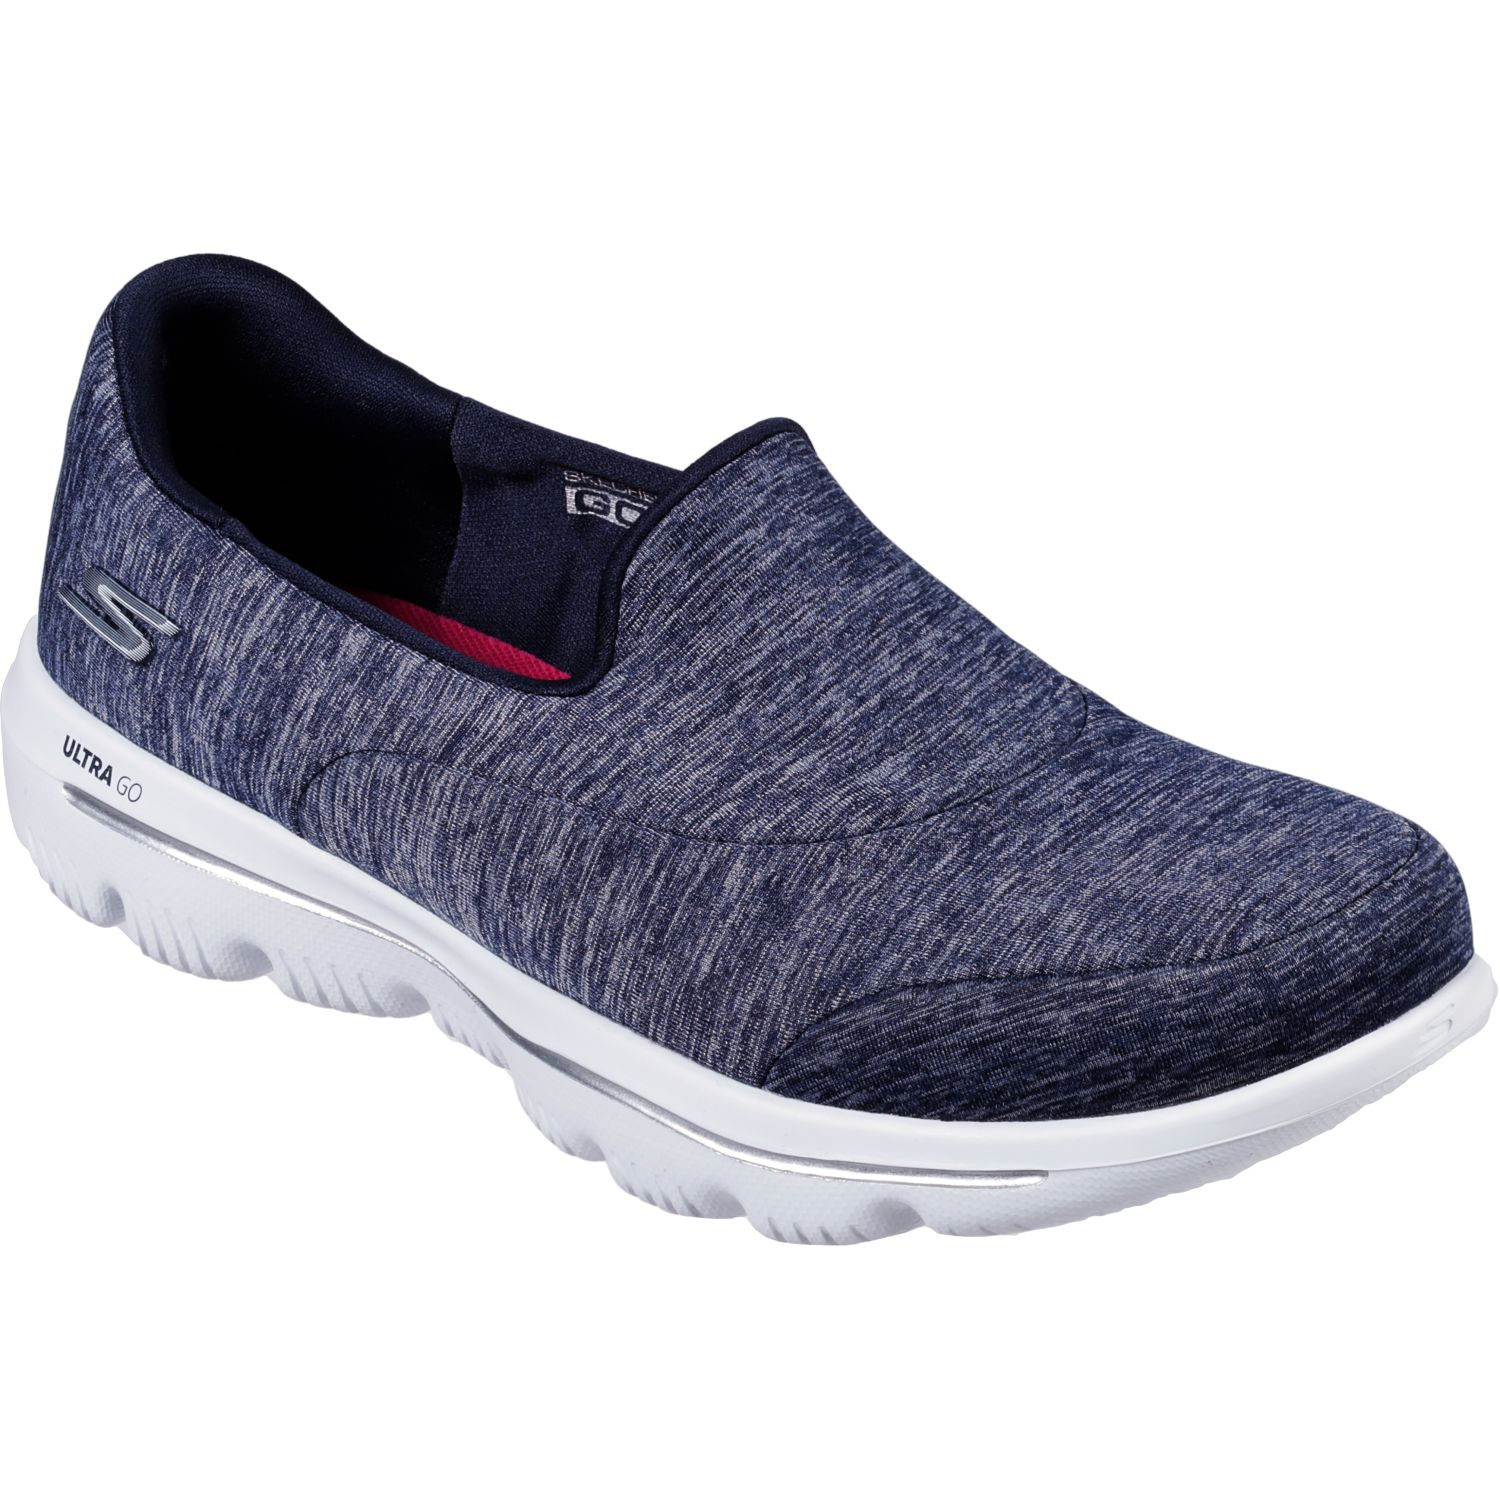 Skechers go walk evolution ultra - amazed Navy / Blanco Walking